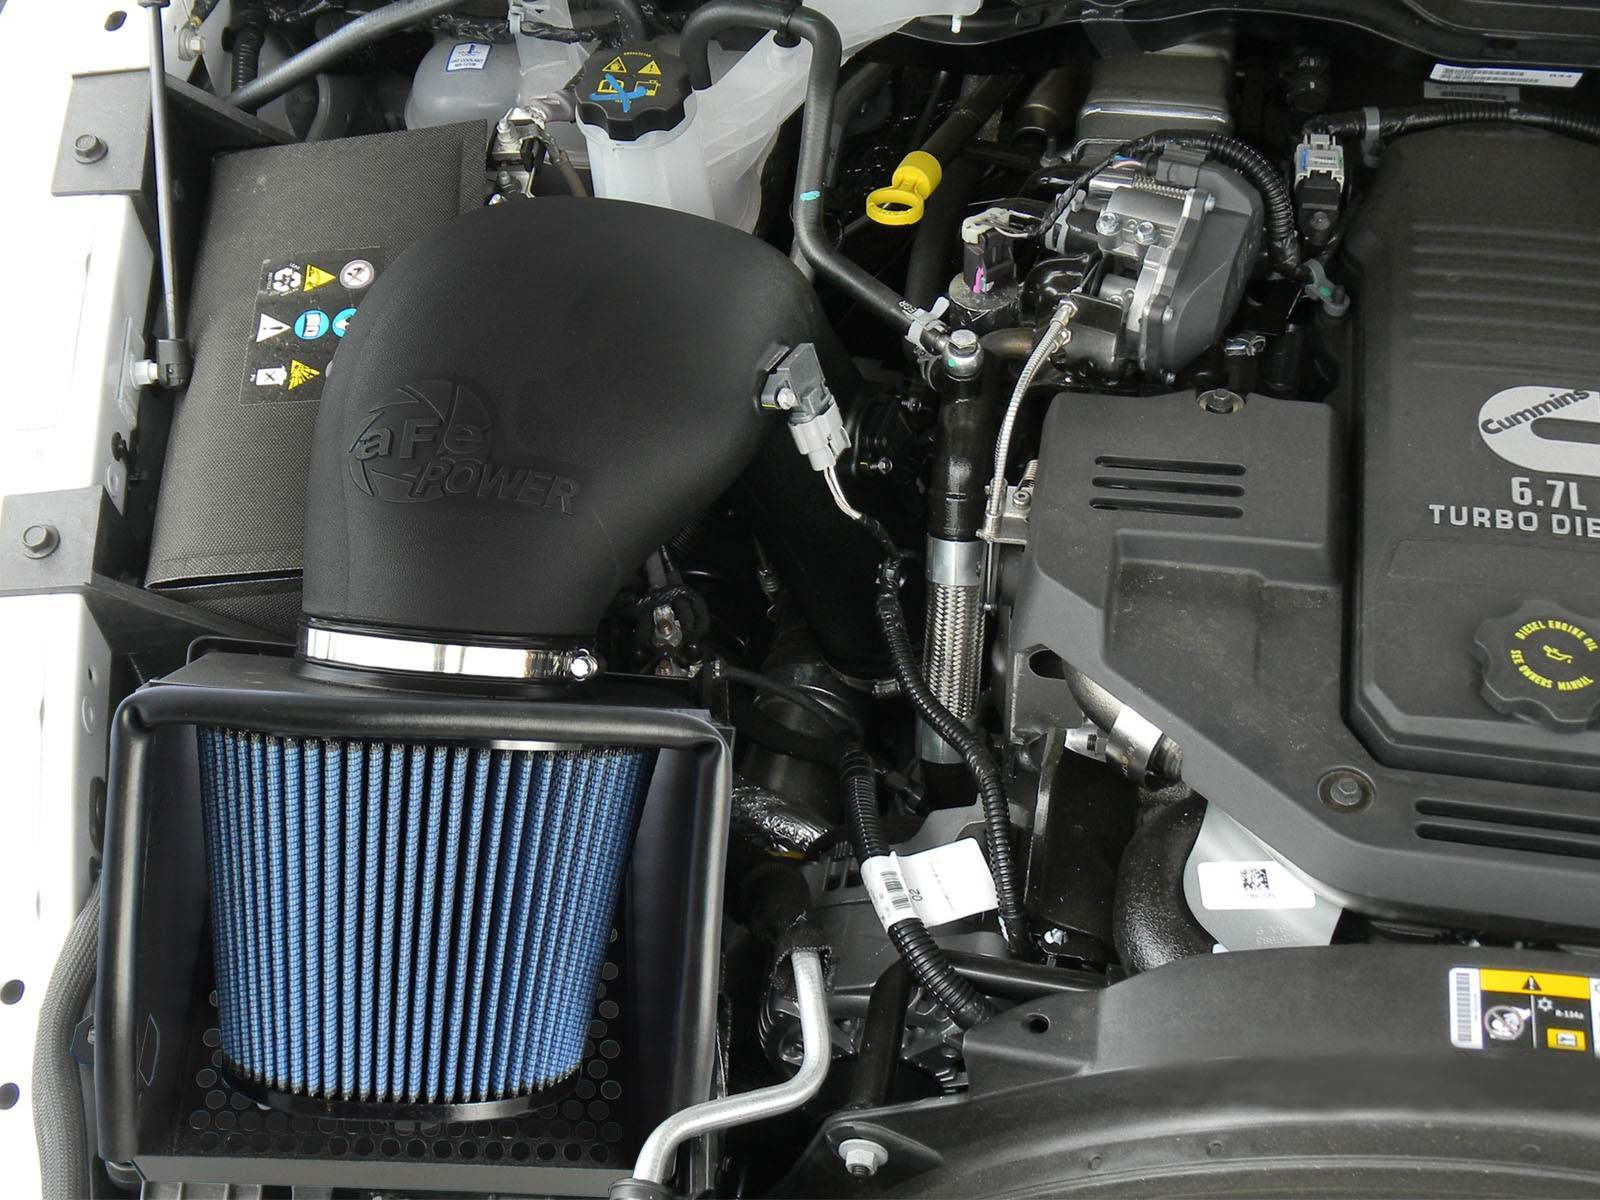 54-32412 - AFE's Pro5R Stage II Cold Air Intake System for 2013-2018 Dodge Cummins 6.7L diesels - Installed